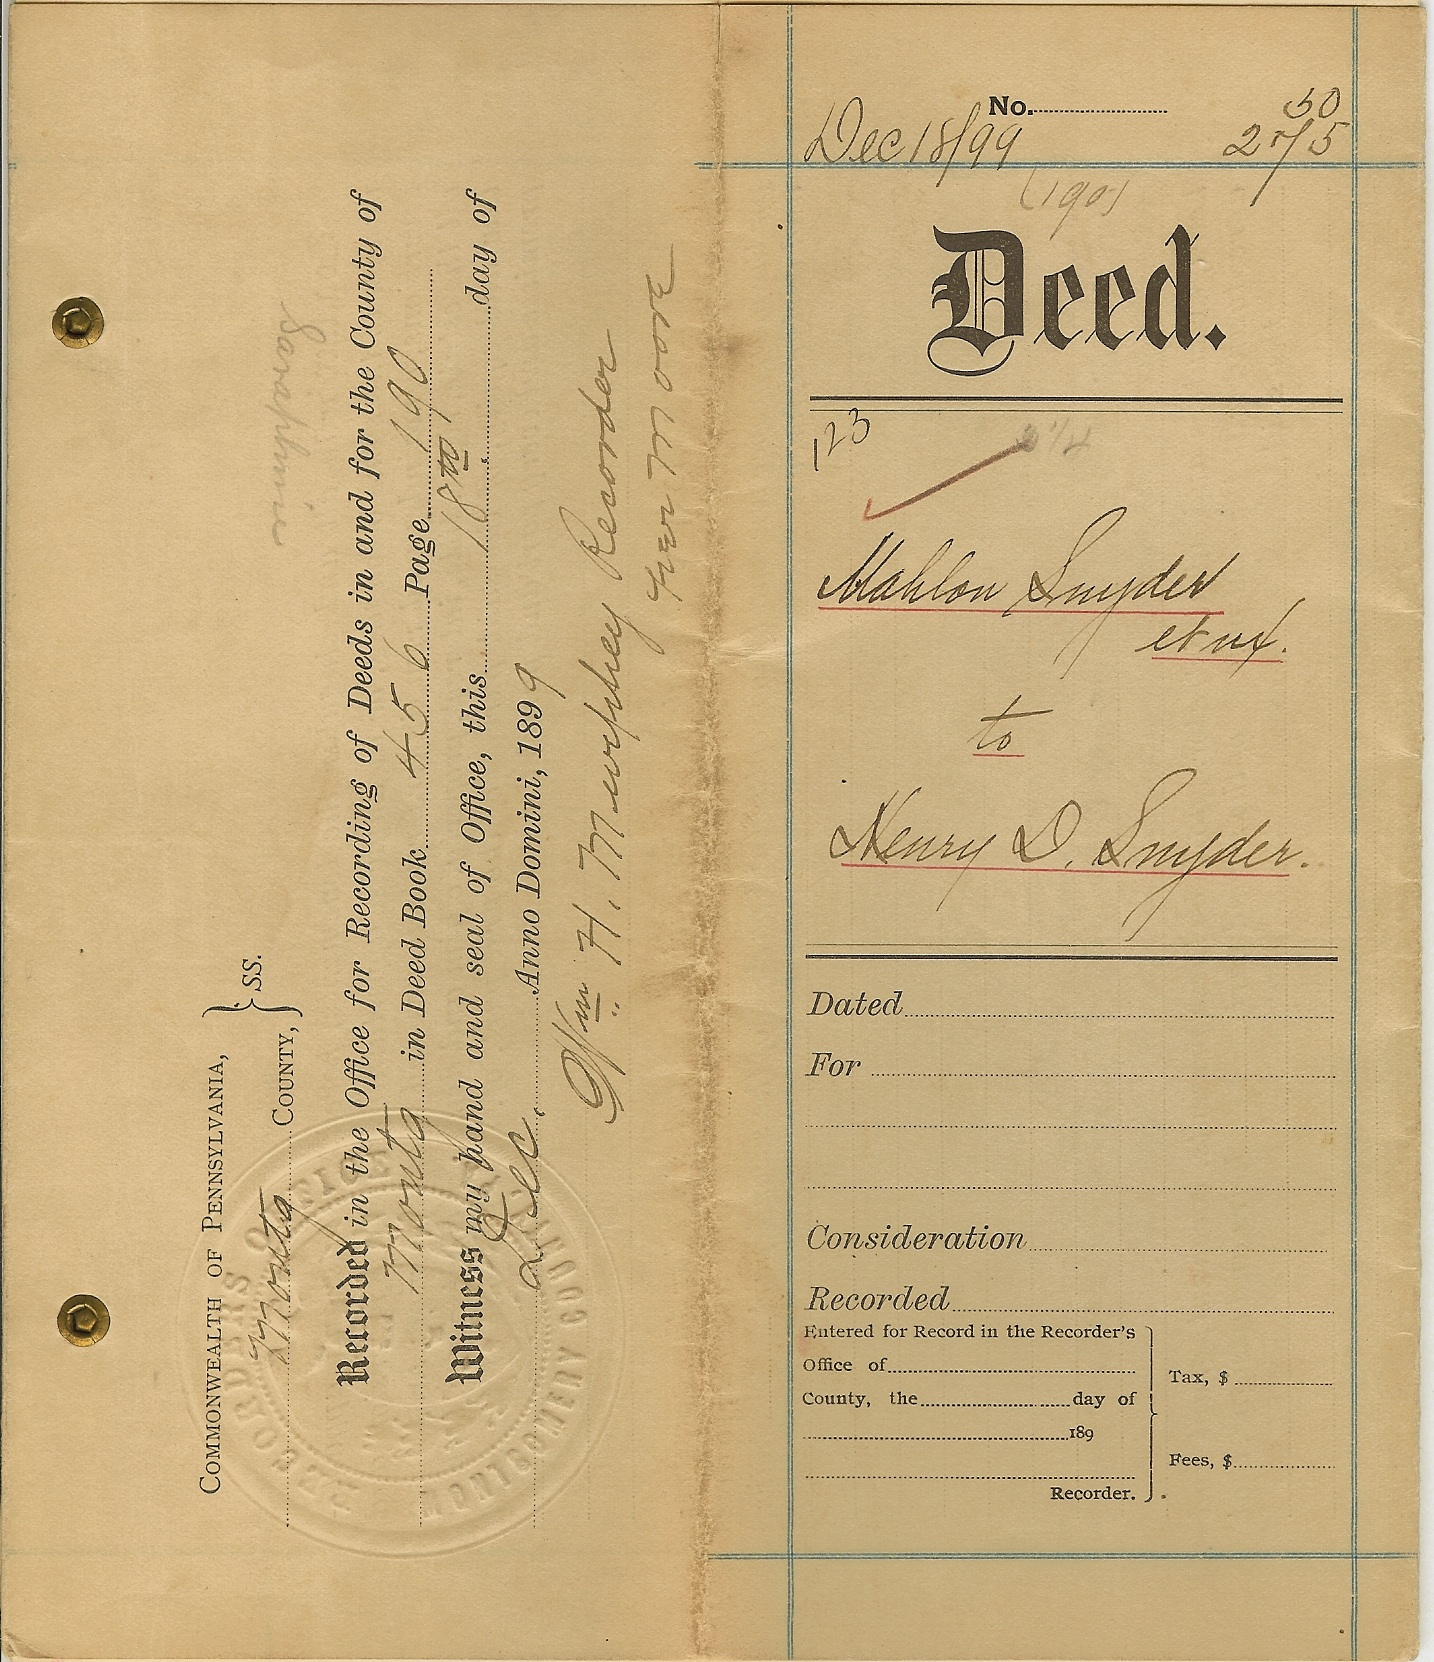 1899 Snyder Deed